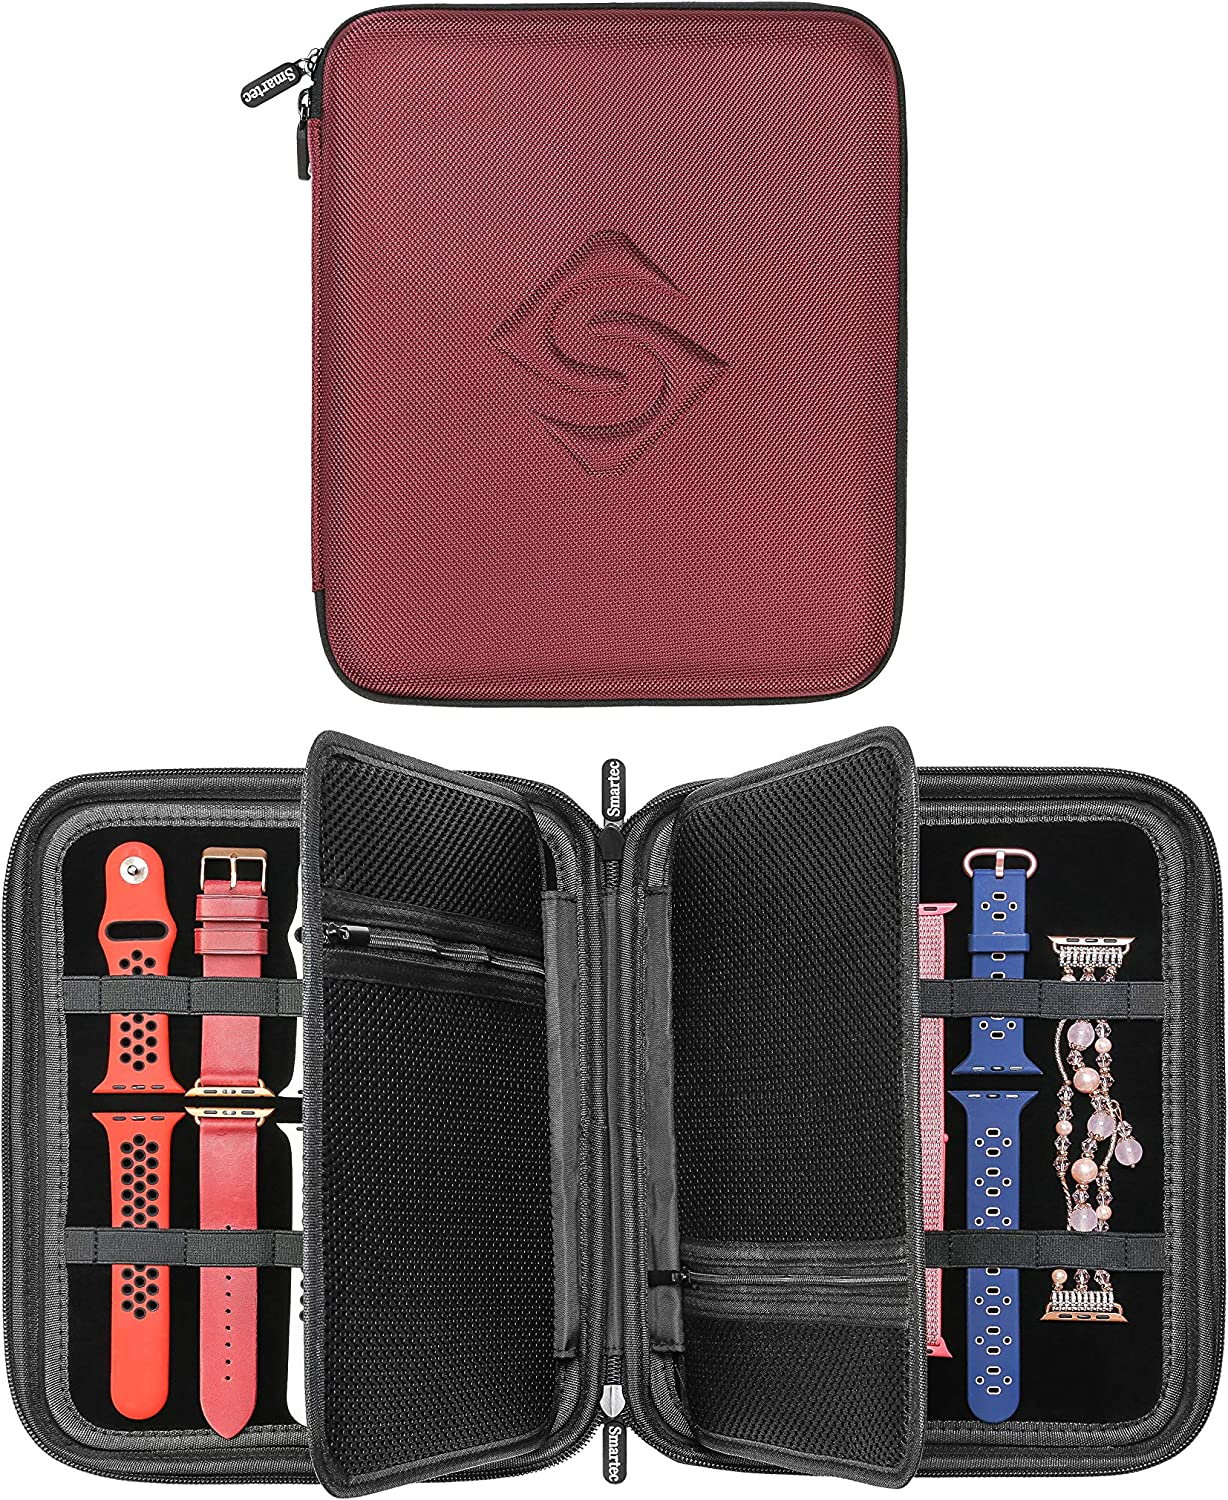 SMARTEC Smart Watch Bands & Accessories Travel/Storage Case, Stores 10+ Bands, Compatible for All Series of Apple Watch Bands (Burgundy)